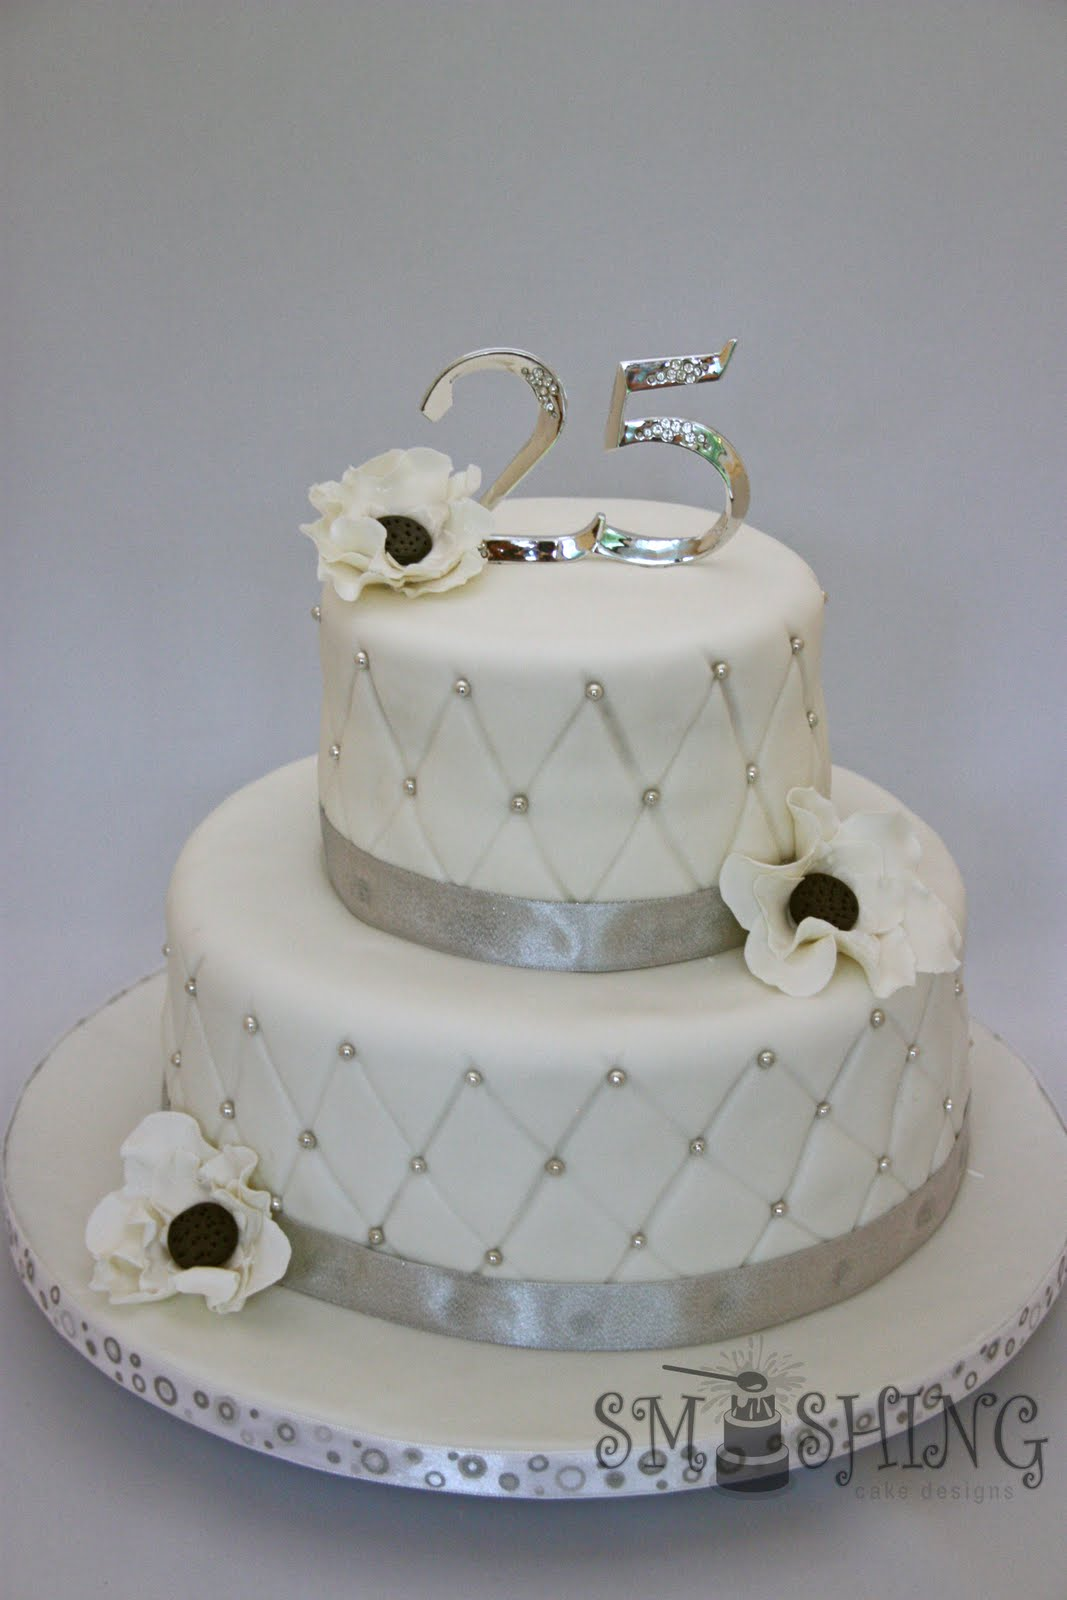 Design Of Cake For Anniversary : Smashing Cake Designs: Silver Anniversary